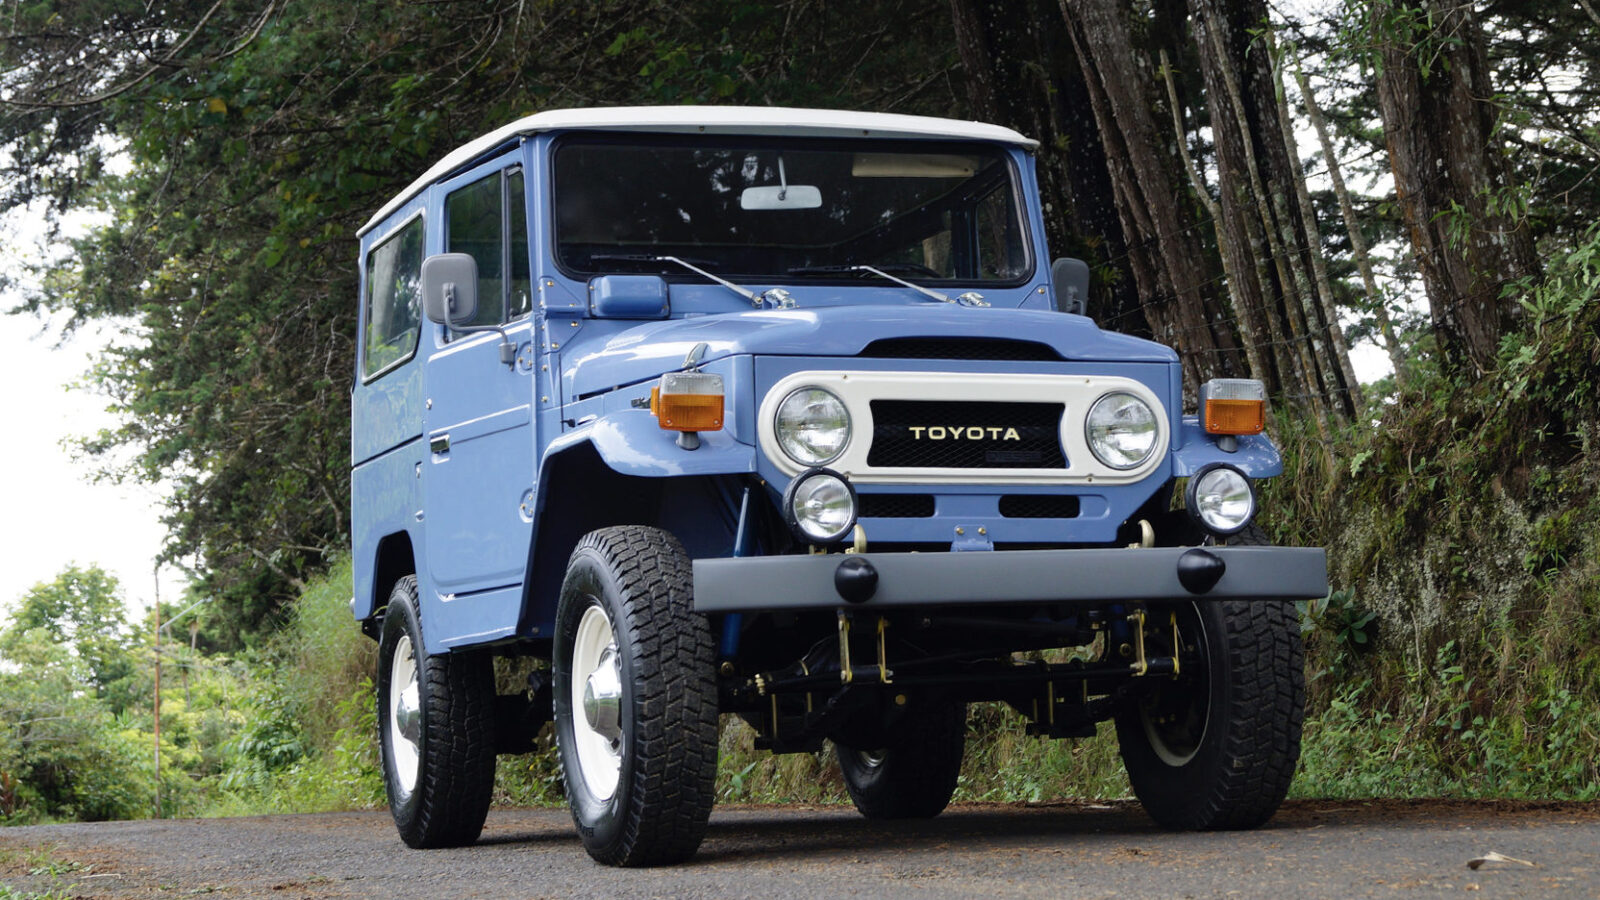 Toyota Land Cruiser BJ40 1600x900 - 1976 Toyota Land Cruiser BJ40